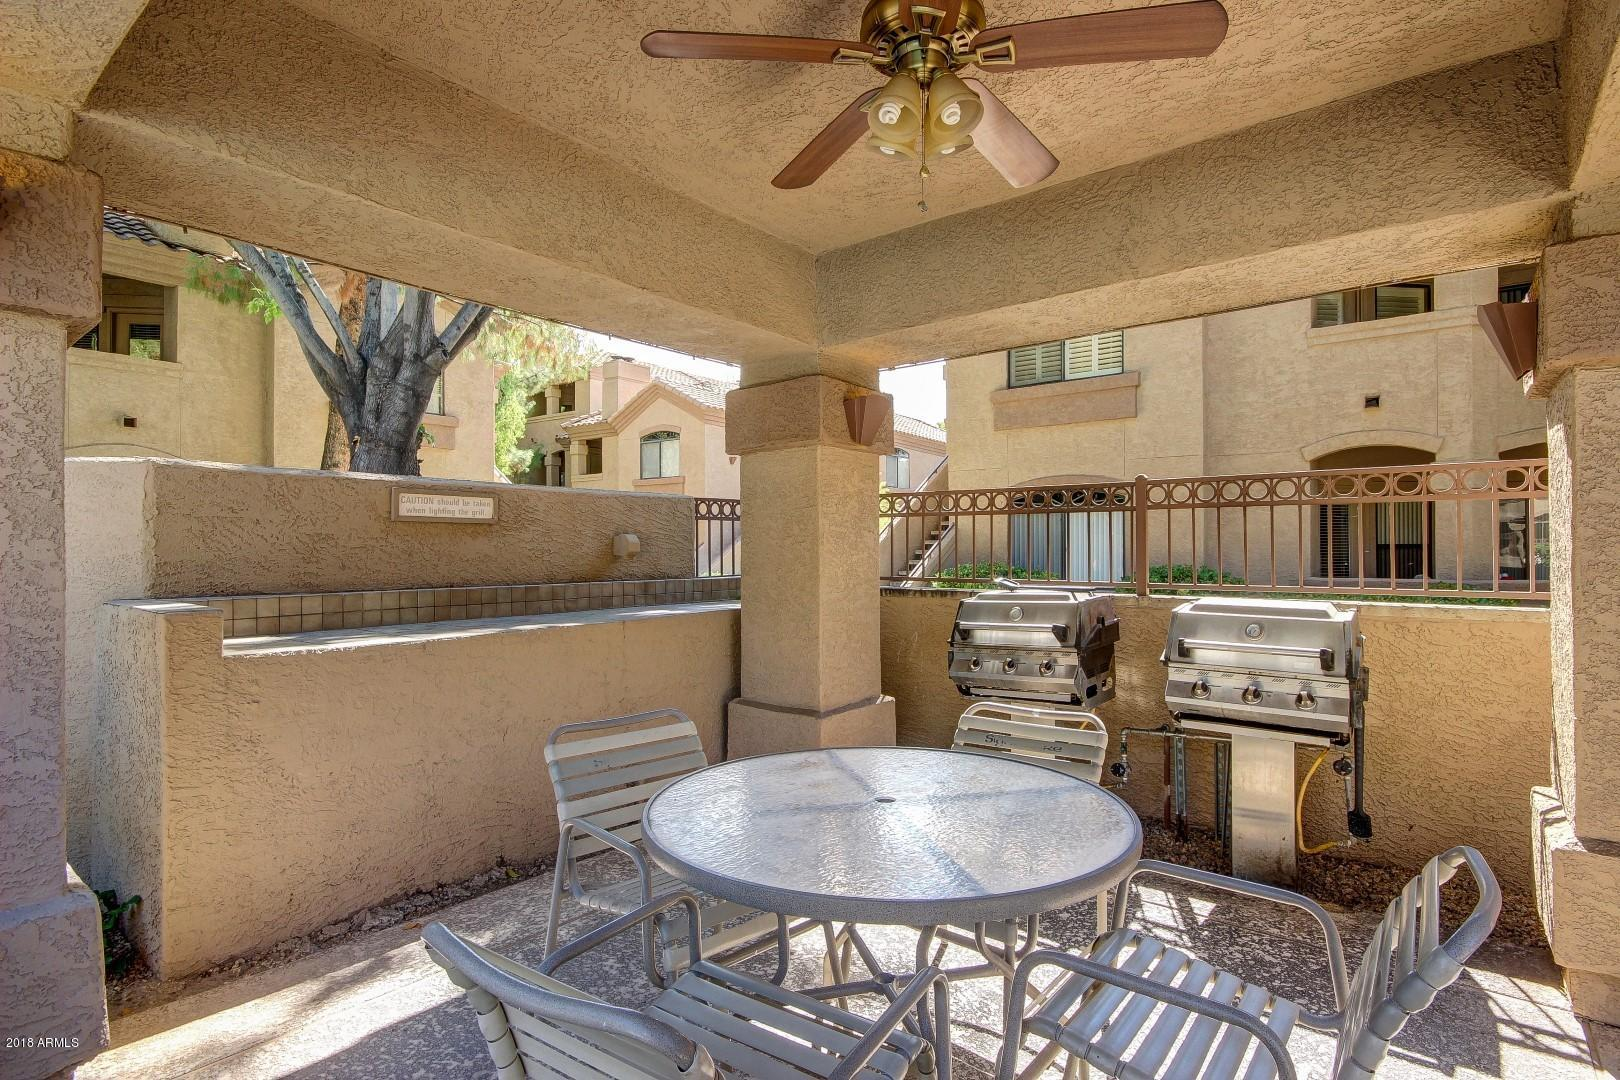 MLS 5841396 15095 N THOMPSON PEAK Parkway Unit 3027, Scottsdale, AZ 85260 Scottsdale AZ Scottsdale Airpark Area